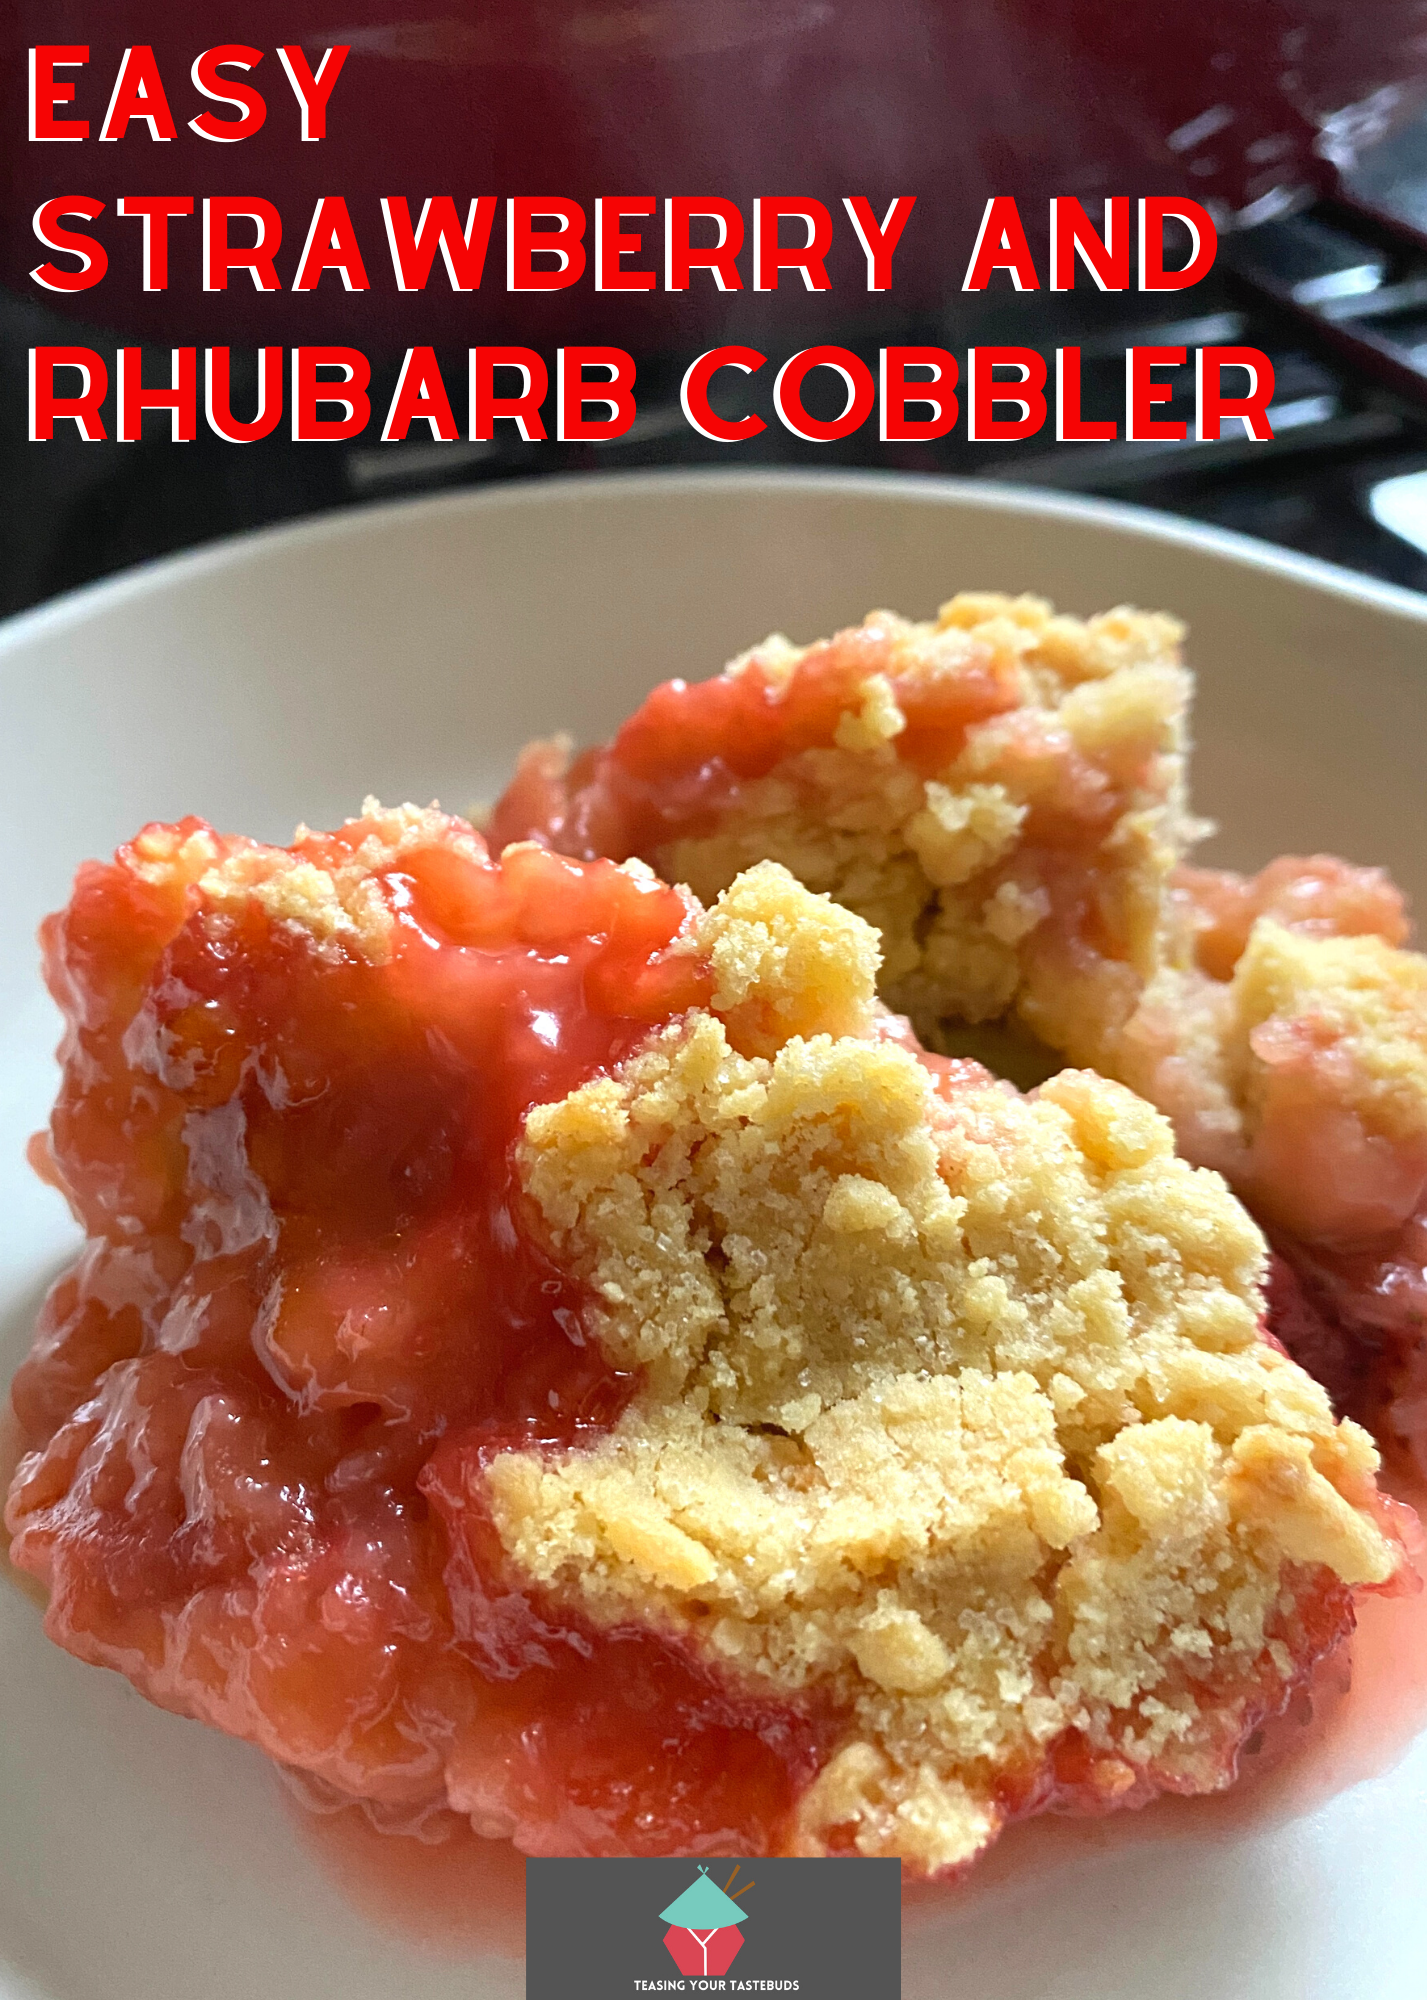 Easy strawberry and rhubarb cobbler is a delicious dessert bursting with sharp and sweet flavors from the fruit, with a generous buttery crumble topping